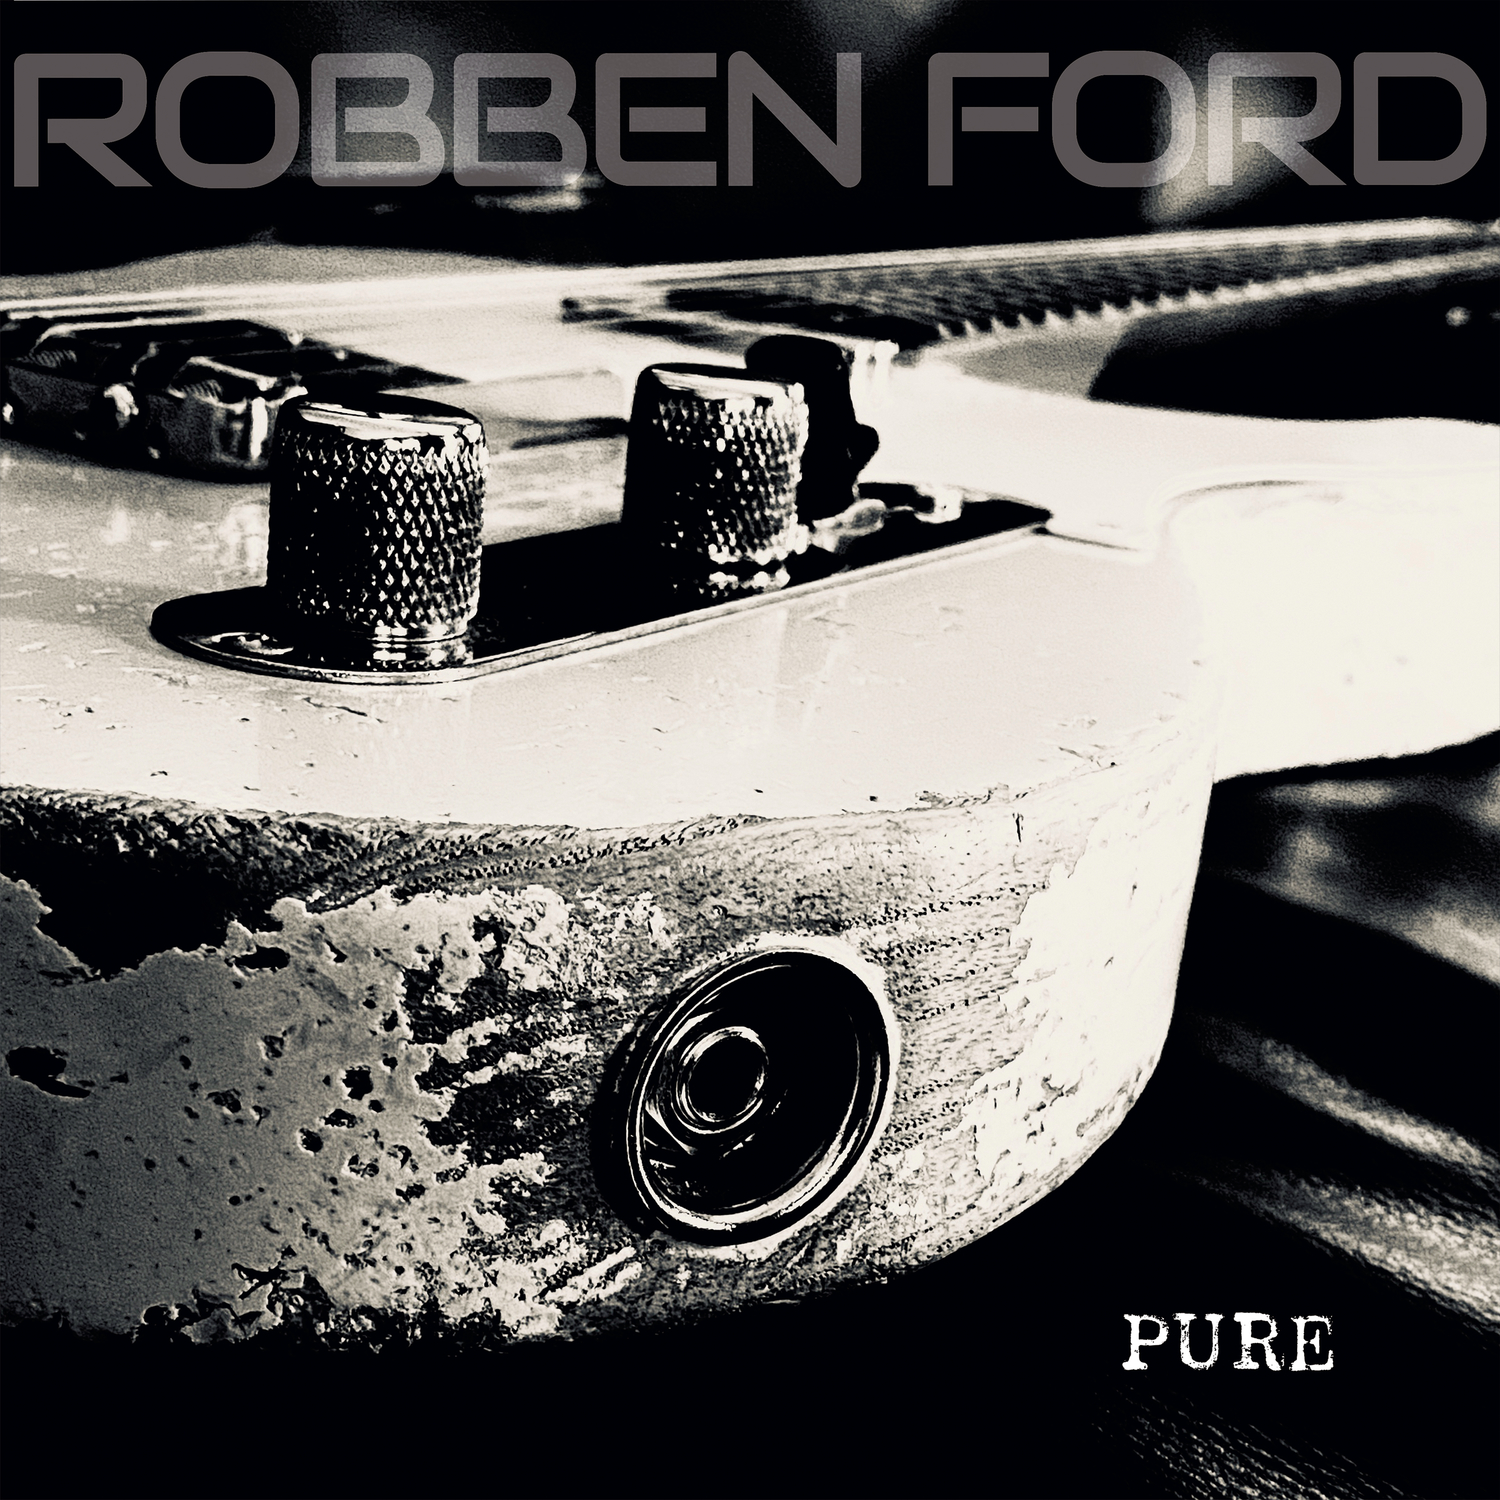 ROBBEN FORD - PURE (CD)